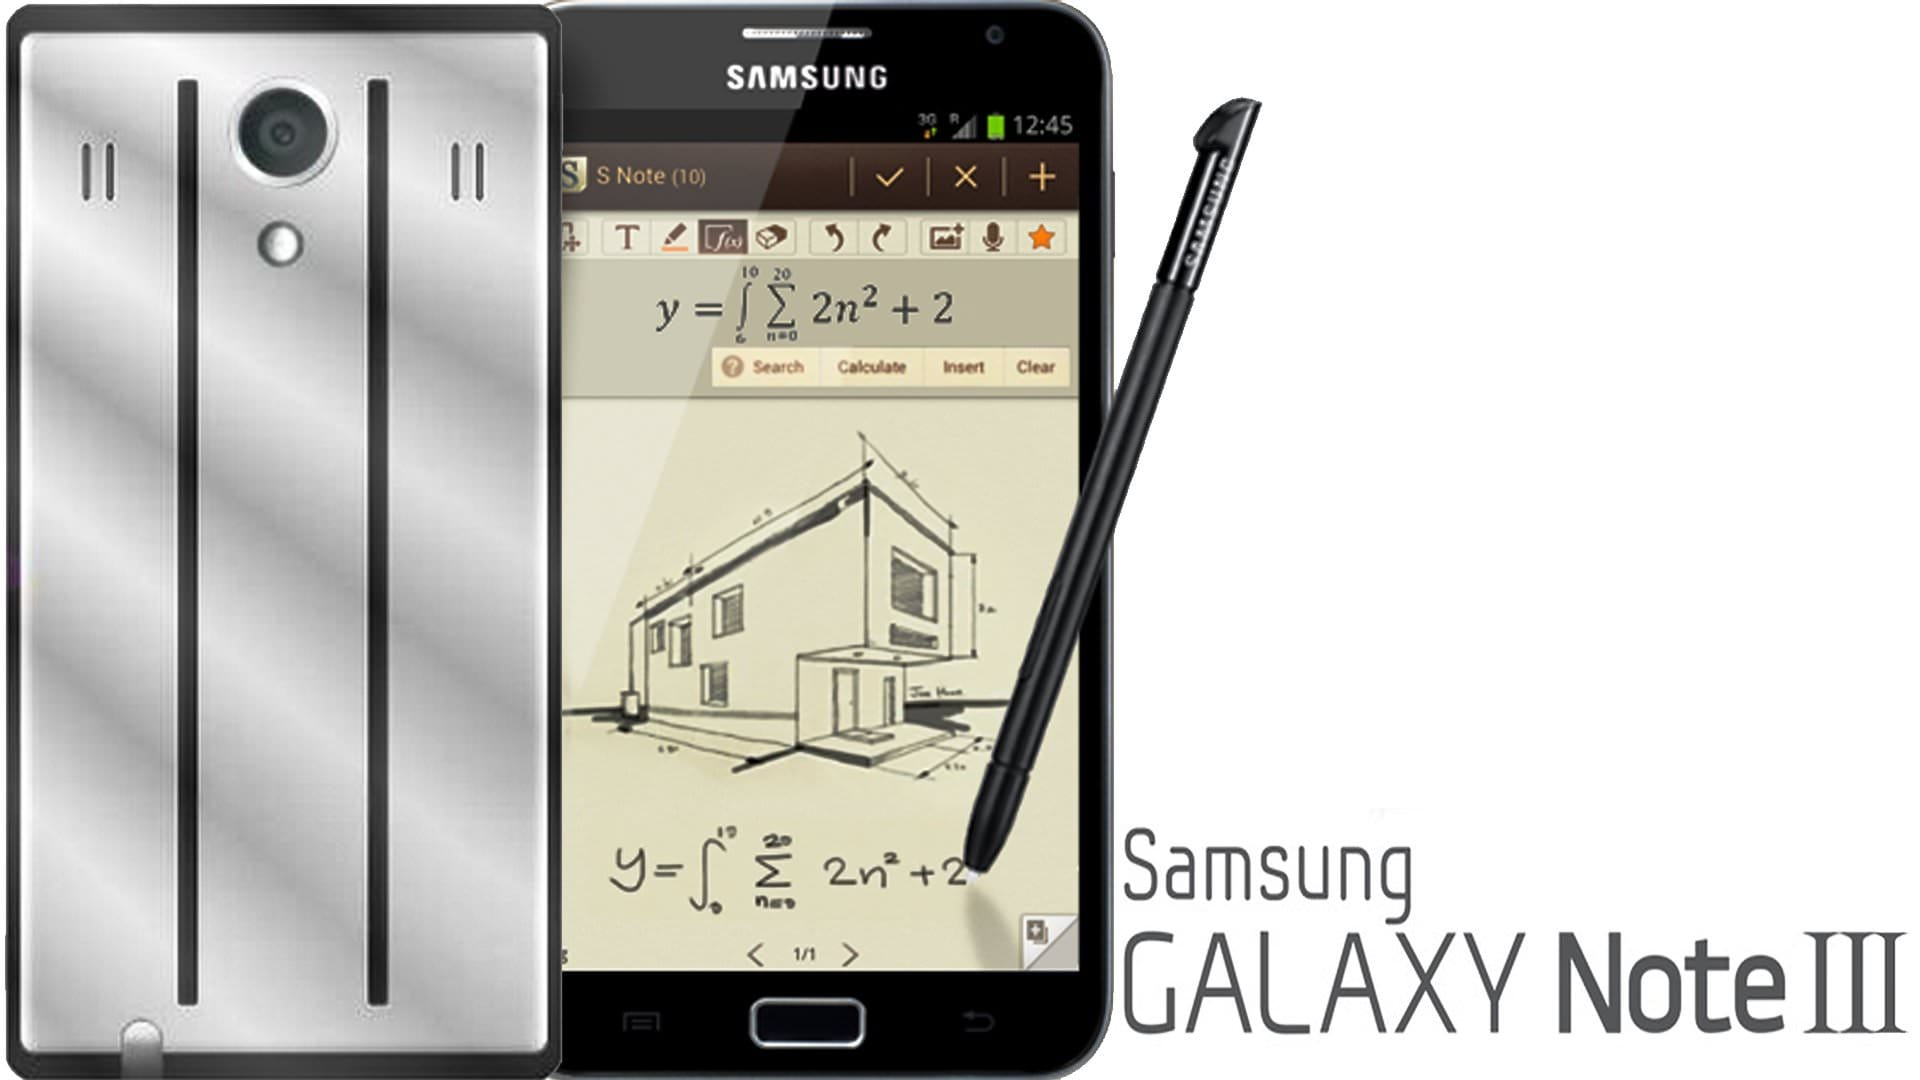 http://galaxy-droid.ru/uploads/posts/2013-03/1362311113_desain-samsung-galaxy-note-iii.jpg